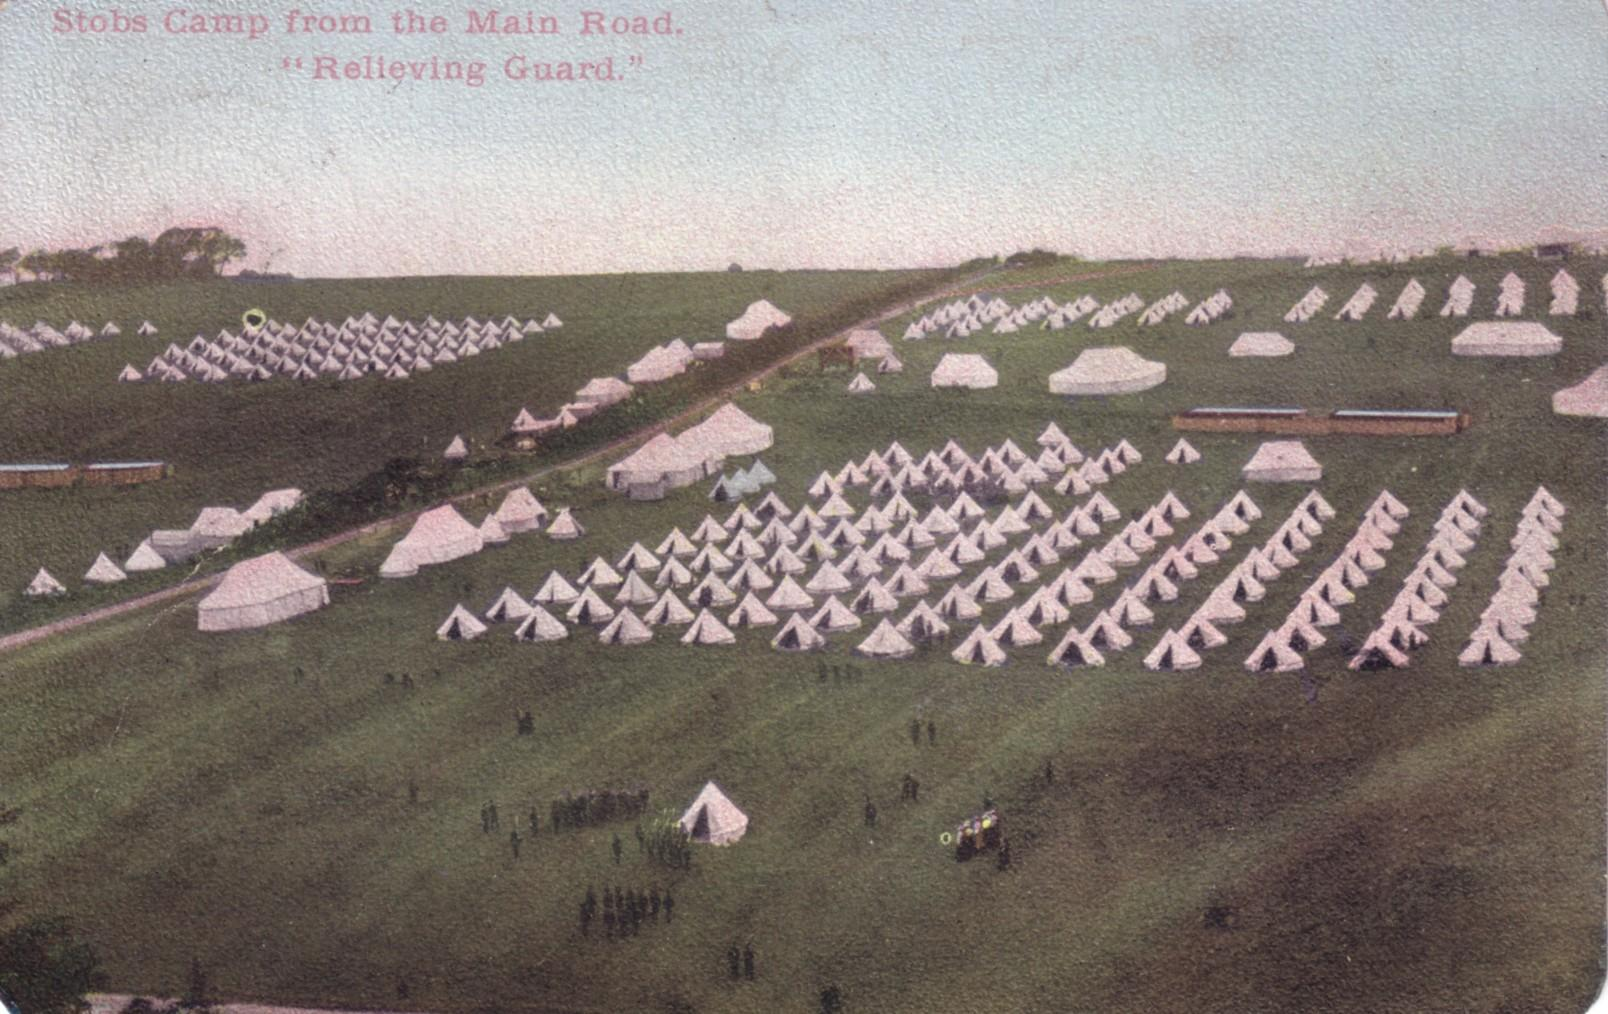 Relieving Guard; Stobs Camp; First World War; 1905; Bell Tents